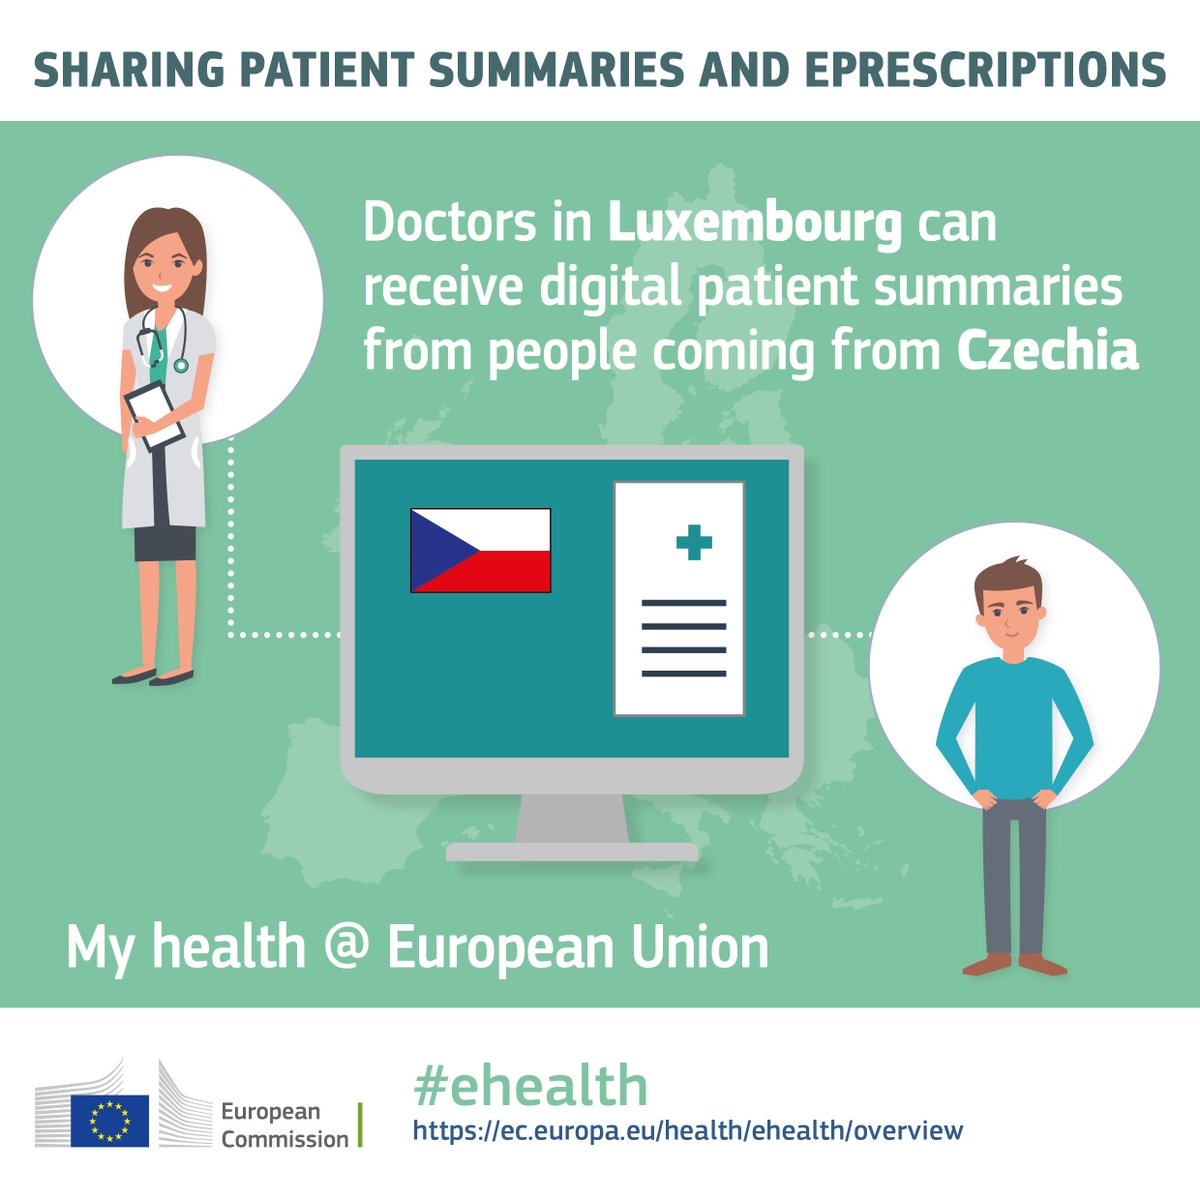 From today, doctors in #Luxembourg can receive digital health summaries for patients coming from #Czechia via My Health@the European Union, the EU cross-border #ehealth service: helping doctors give better care and saving lives! Read more: https://t.co/o47s6Ada3k #eHDSI https://t.co/jFwxQRluf2